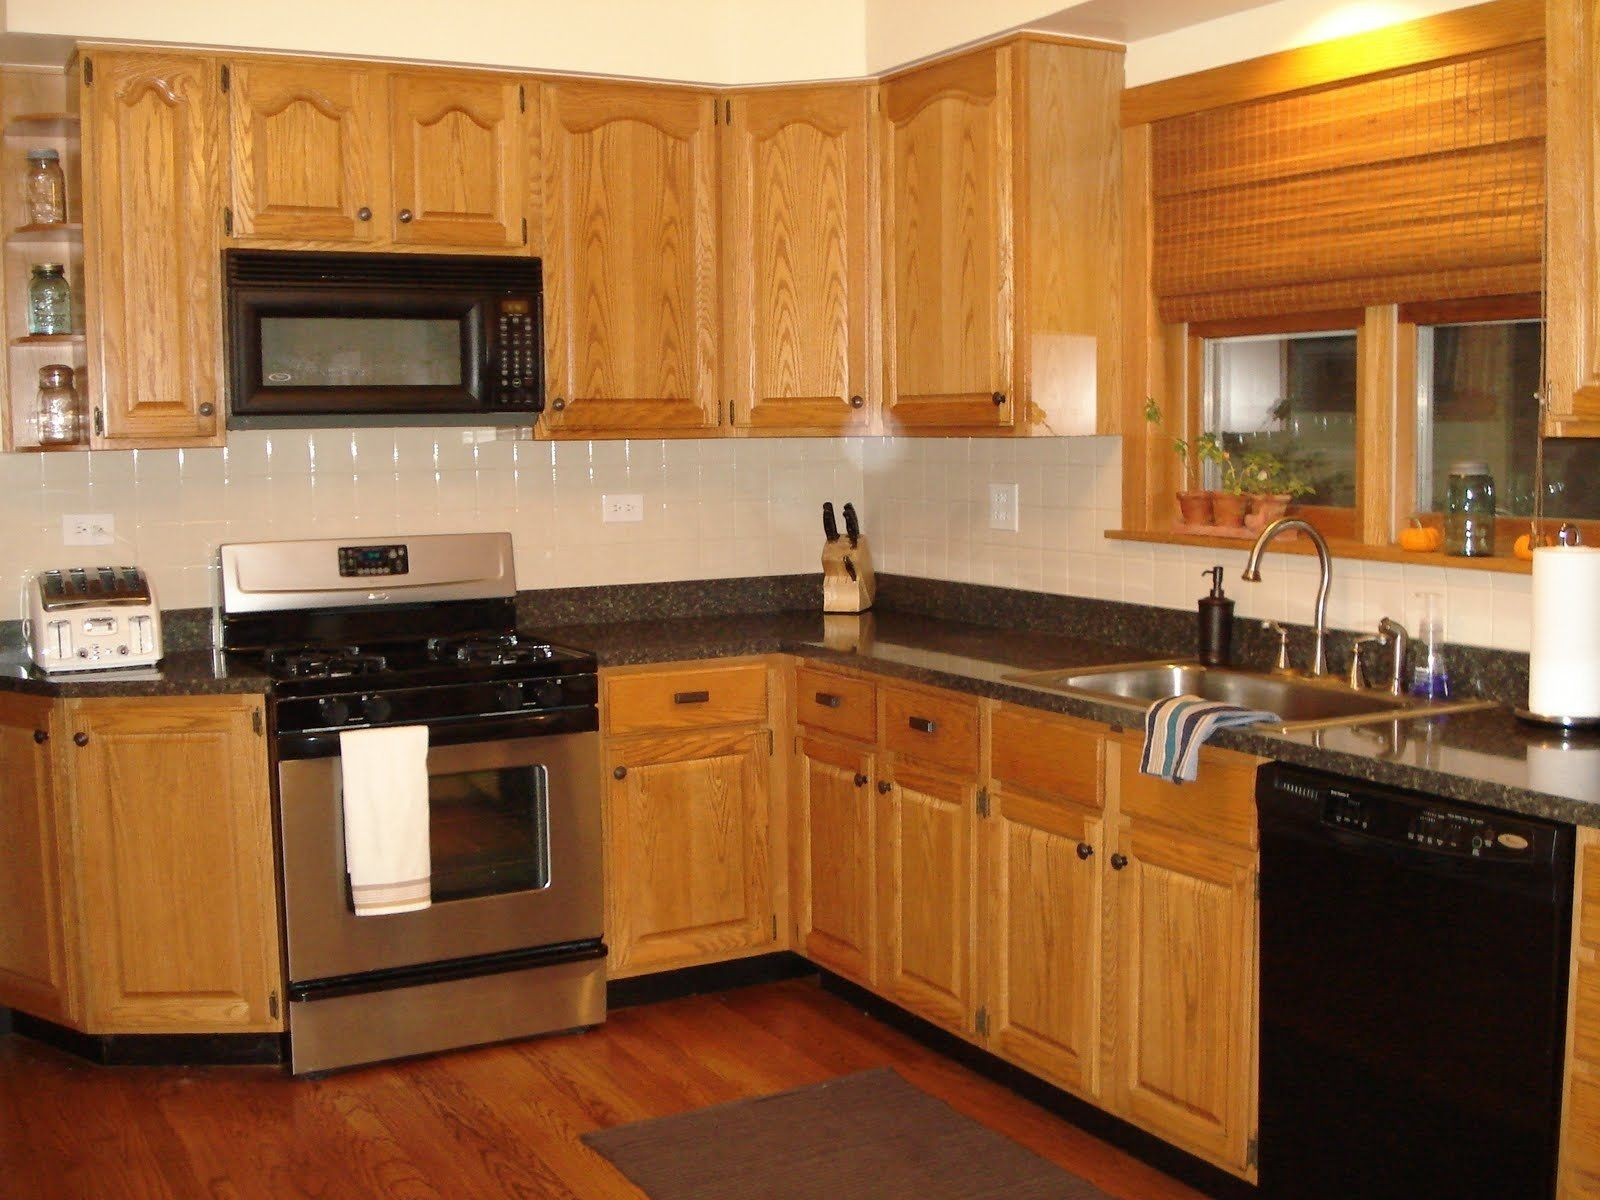 Picture Of Kitchen Paint Colors Idea Using Honey Oak Cabinets And - Kitchen paint colors with honey oak cabinets